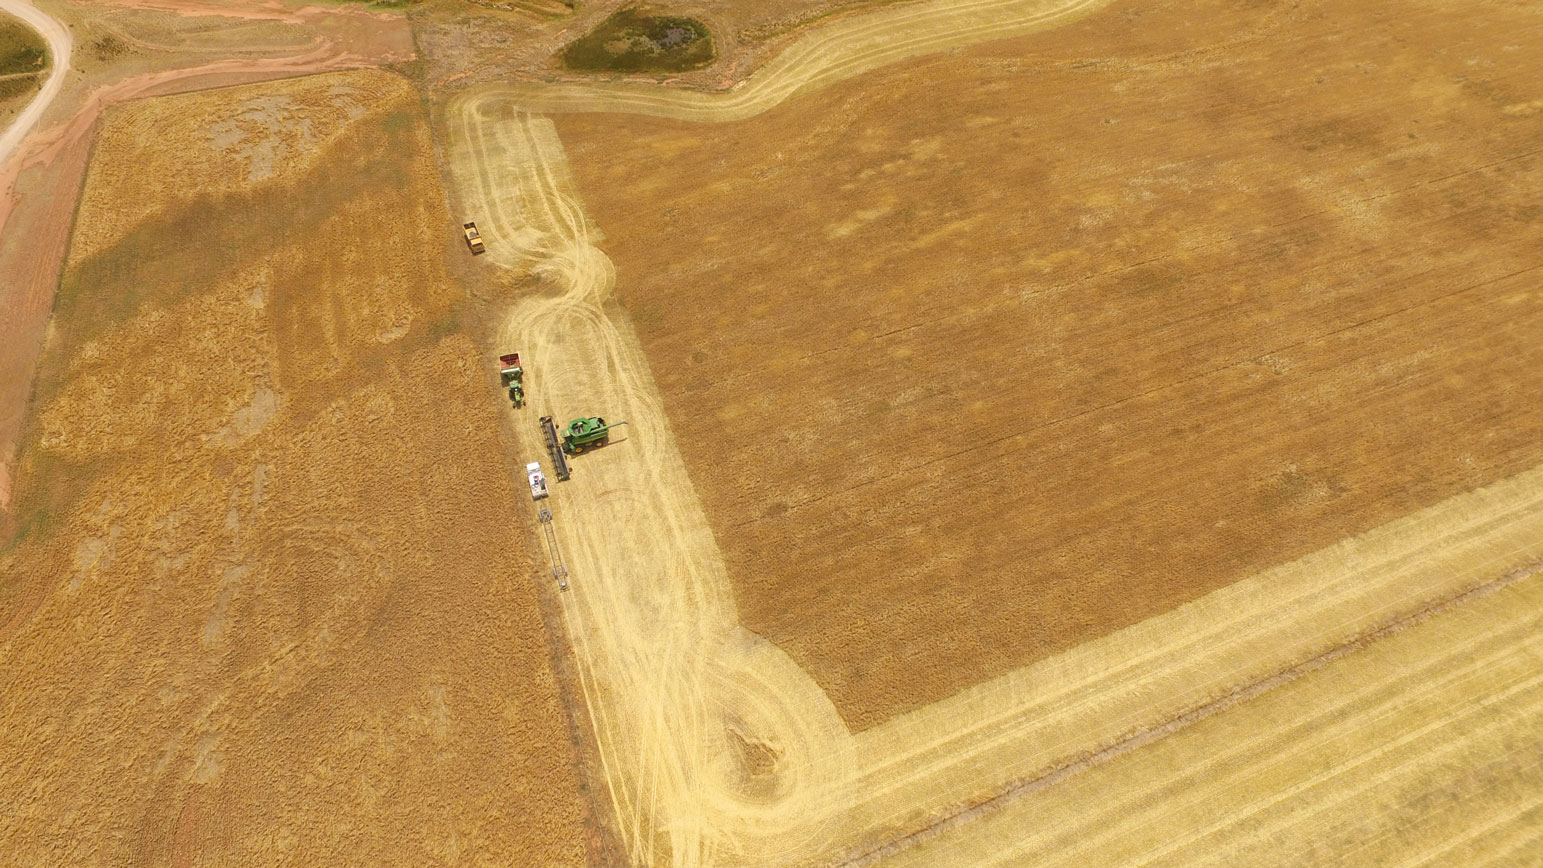 0774---Harvest-from-Above---Russell-Menzies.jpg